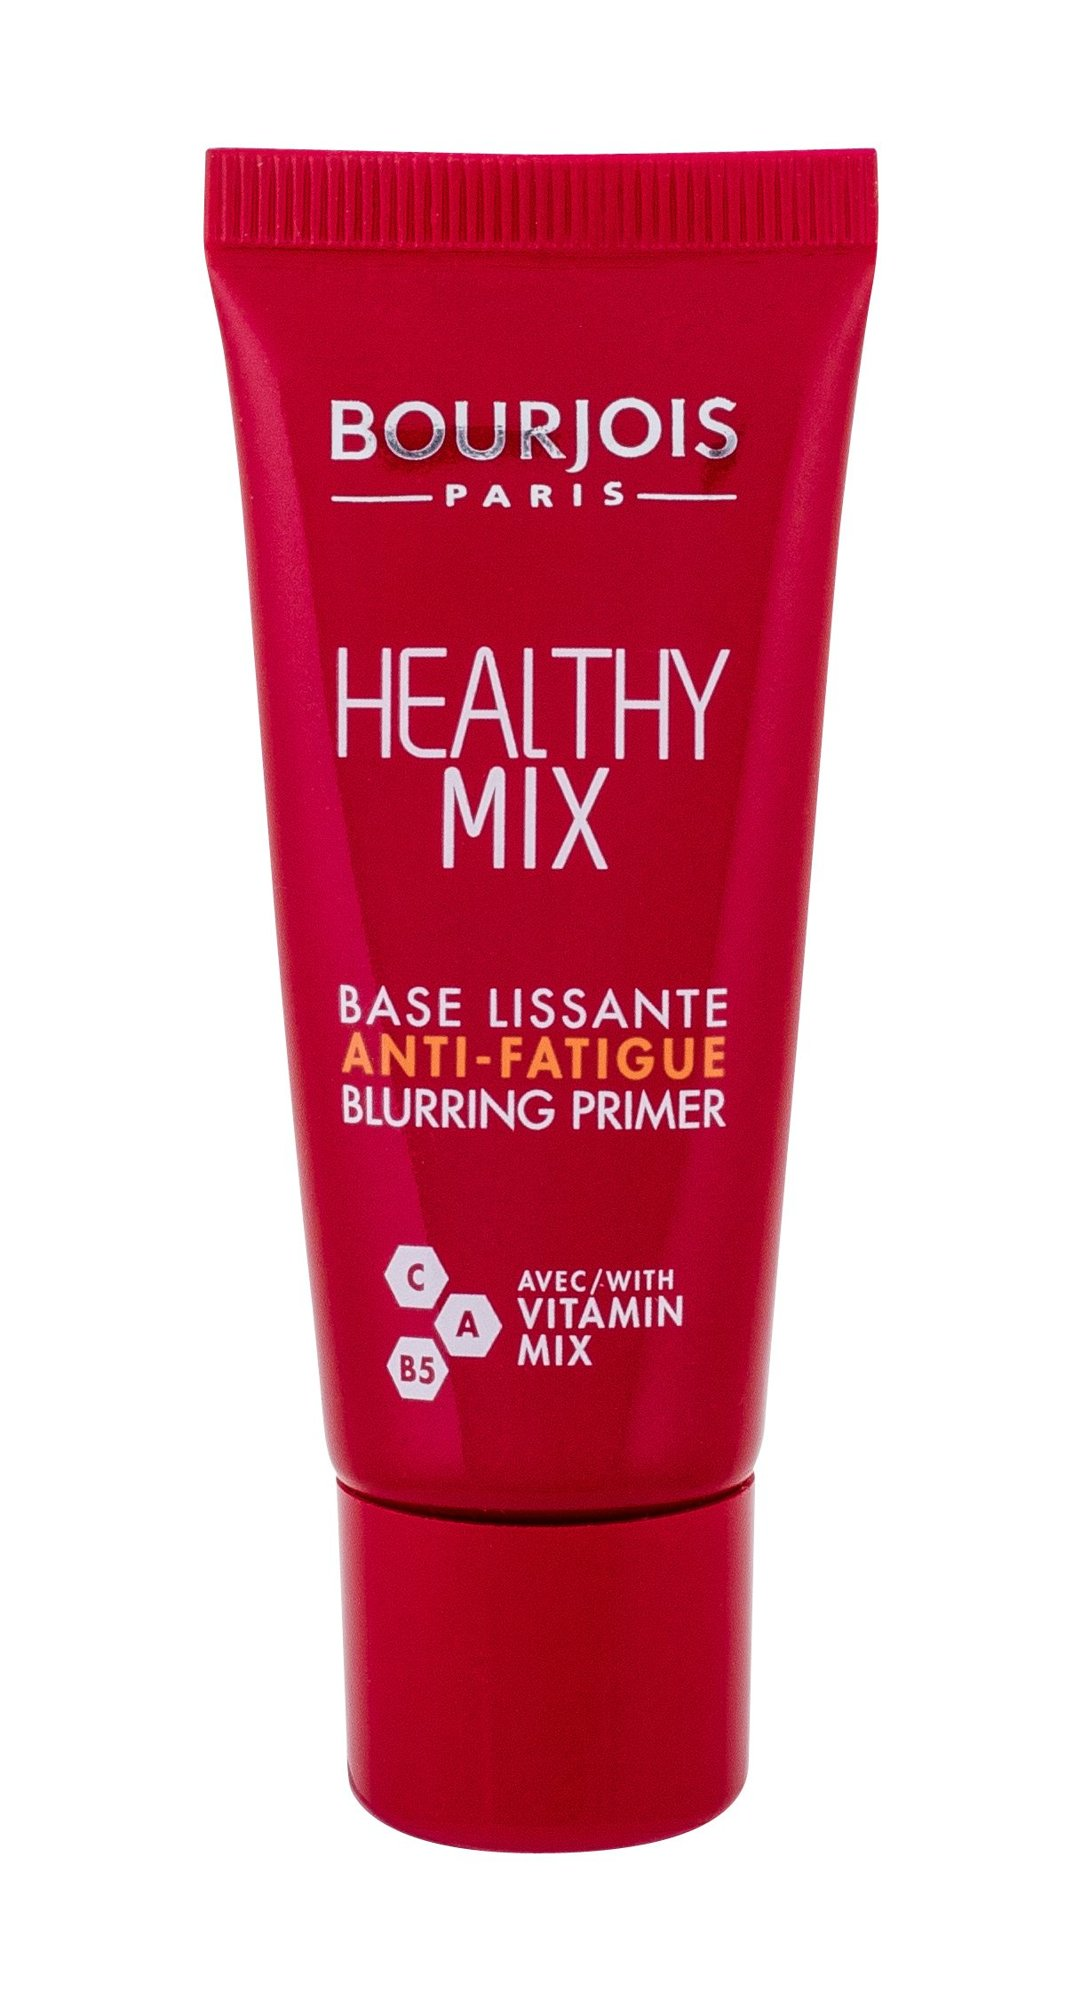 BOURJOIS Paris Healthy Mix Makeup Primer 20ml